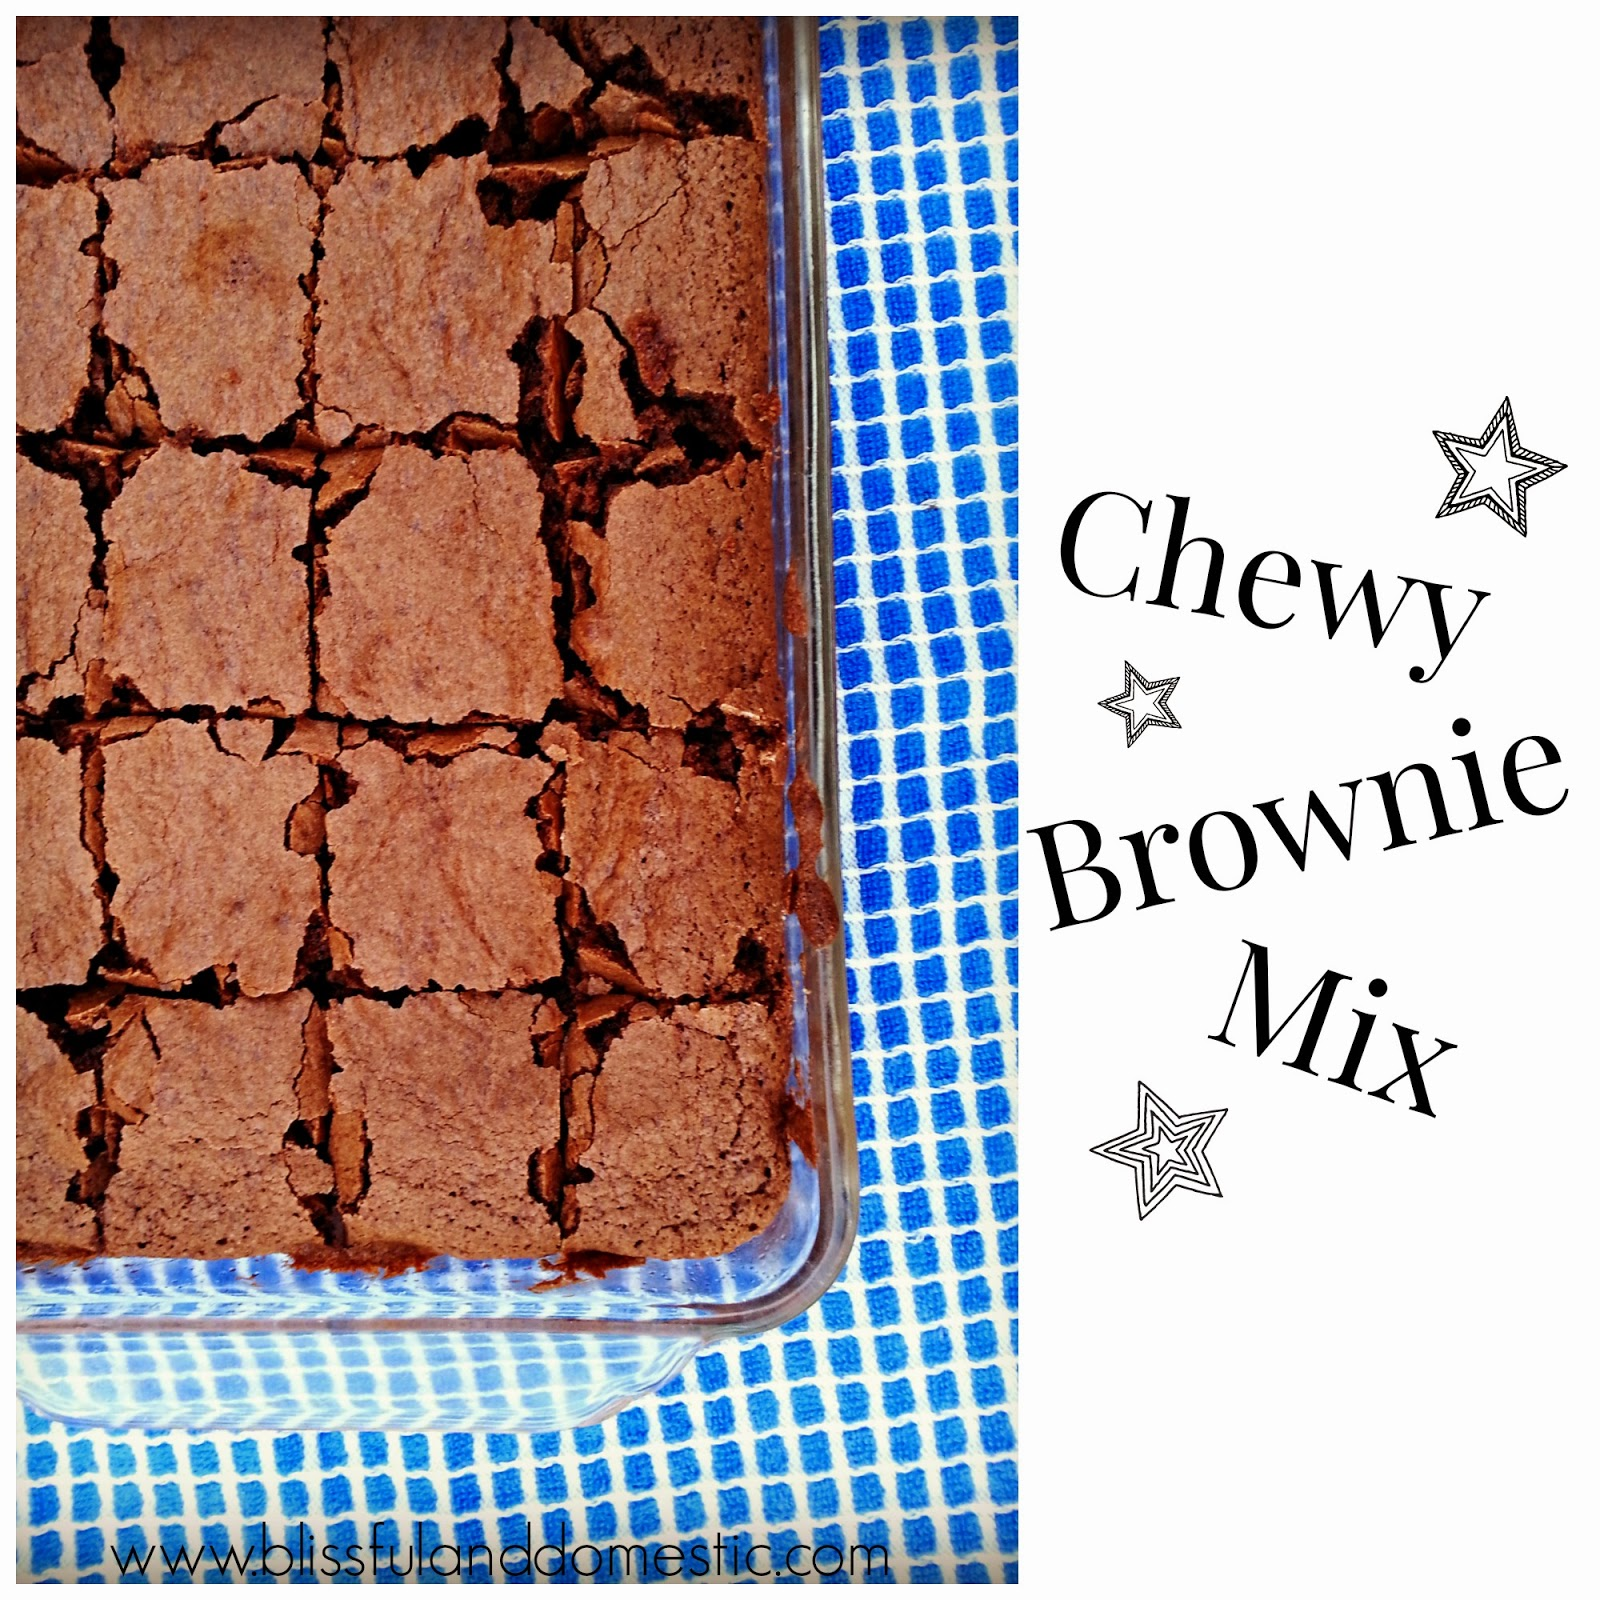 Save $$$ by making your own Brownie Mix at Home